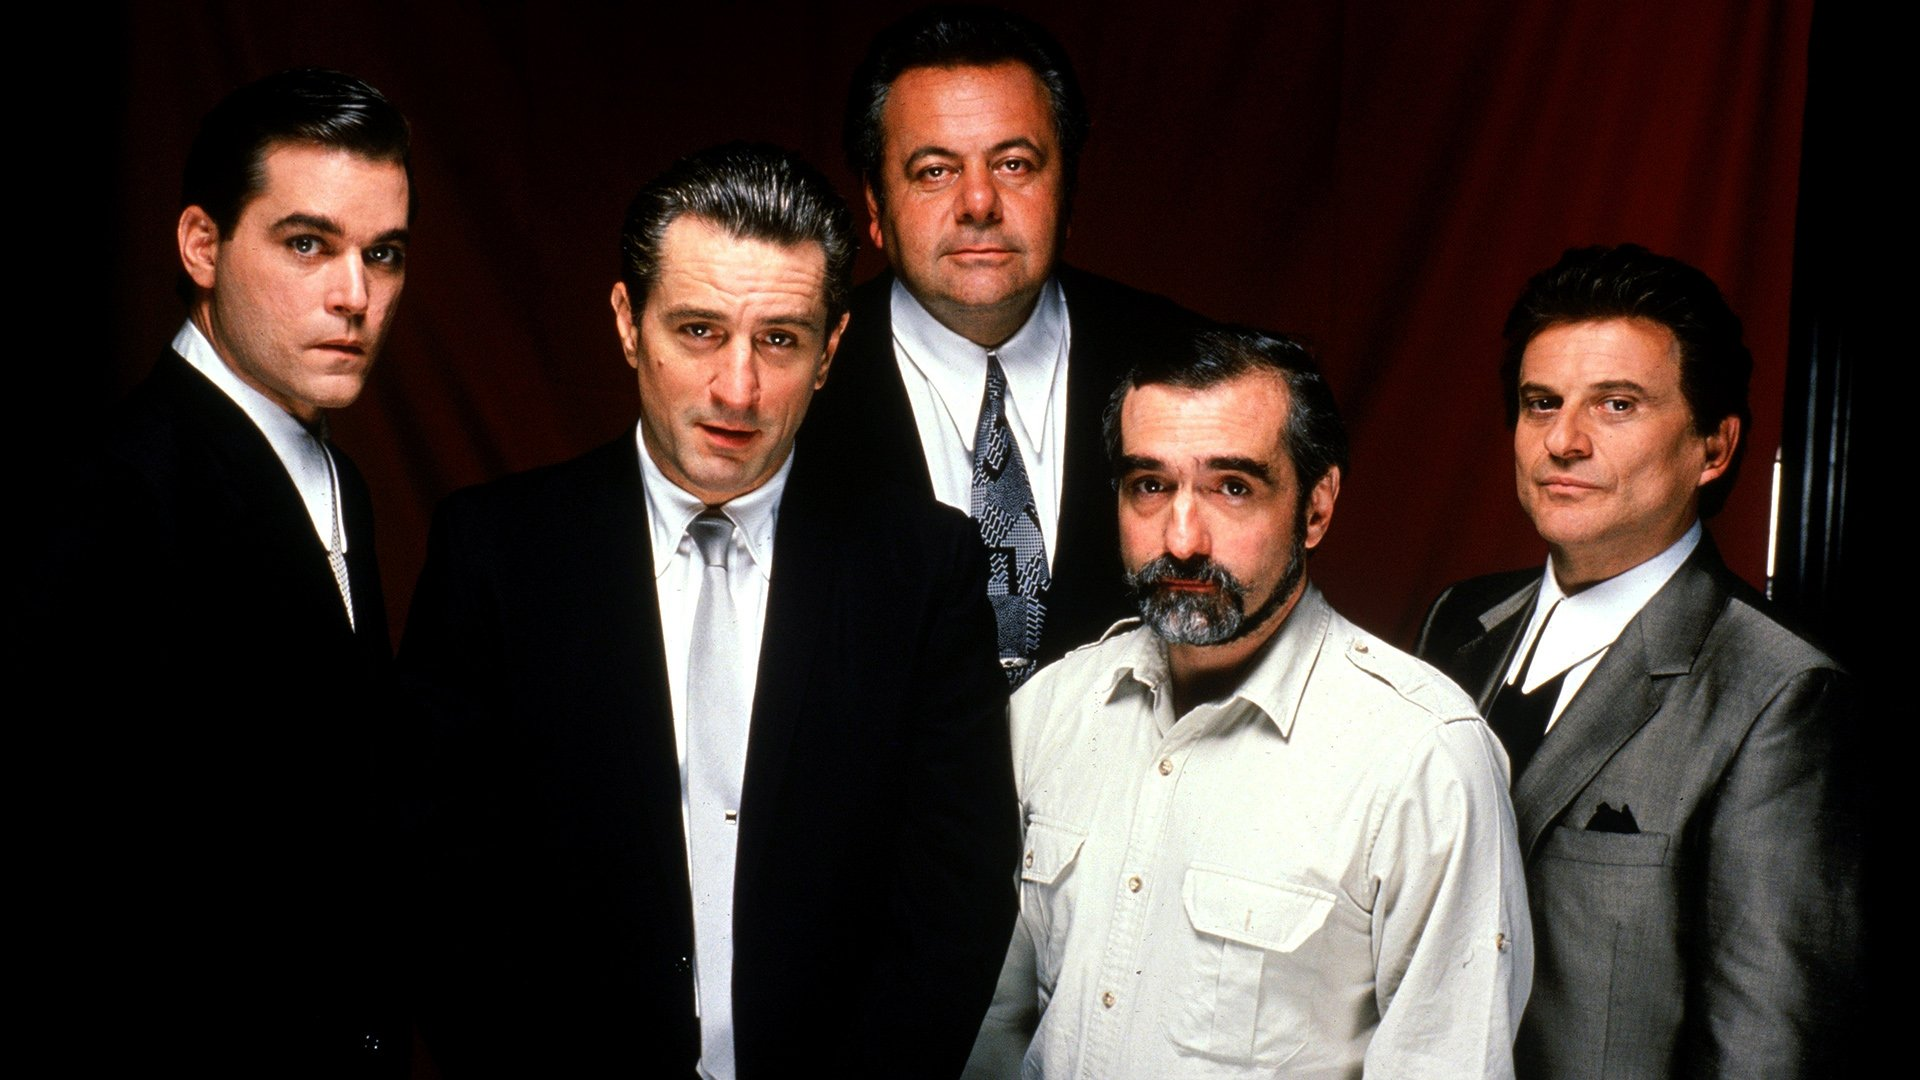 1920x1080 - Goodfellas Wallpapers 7